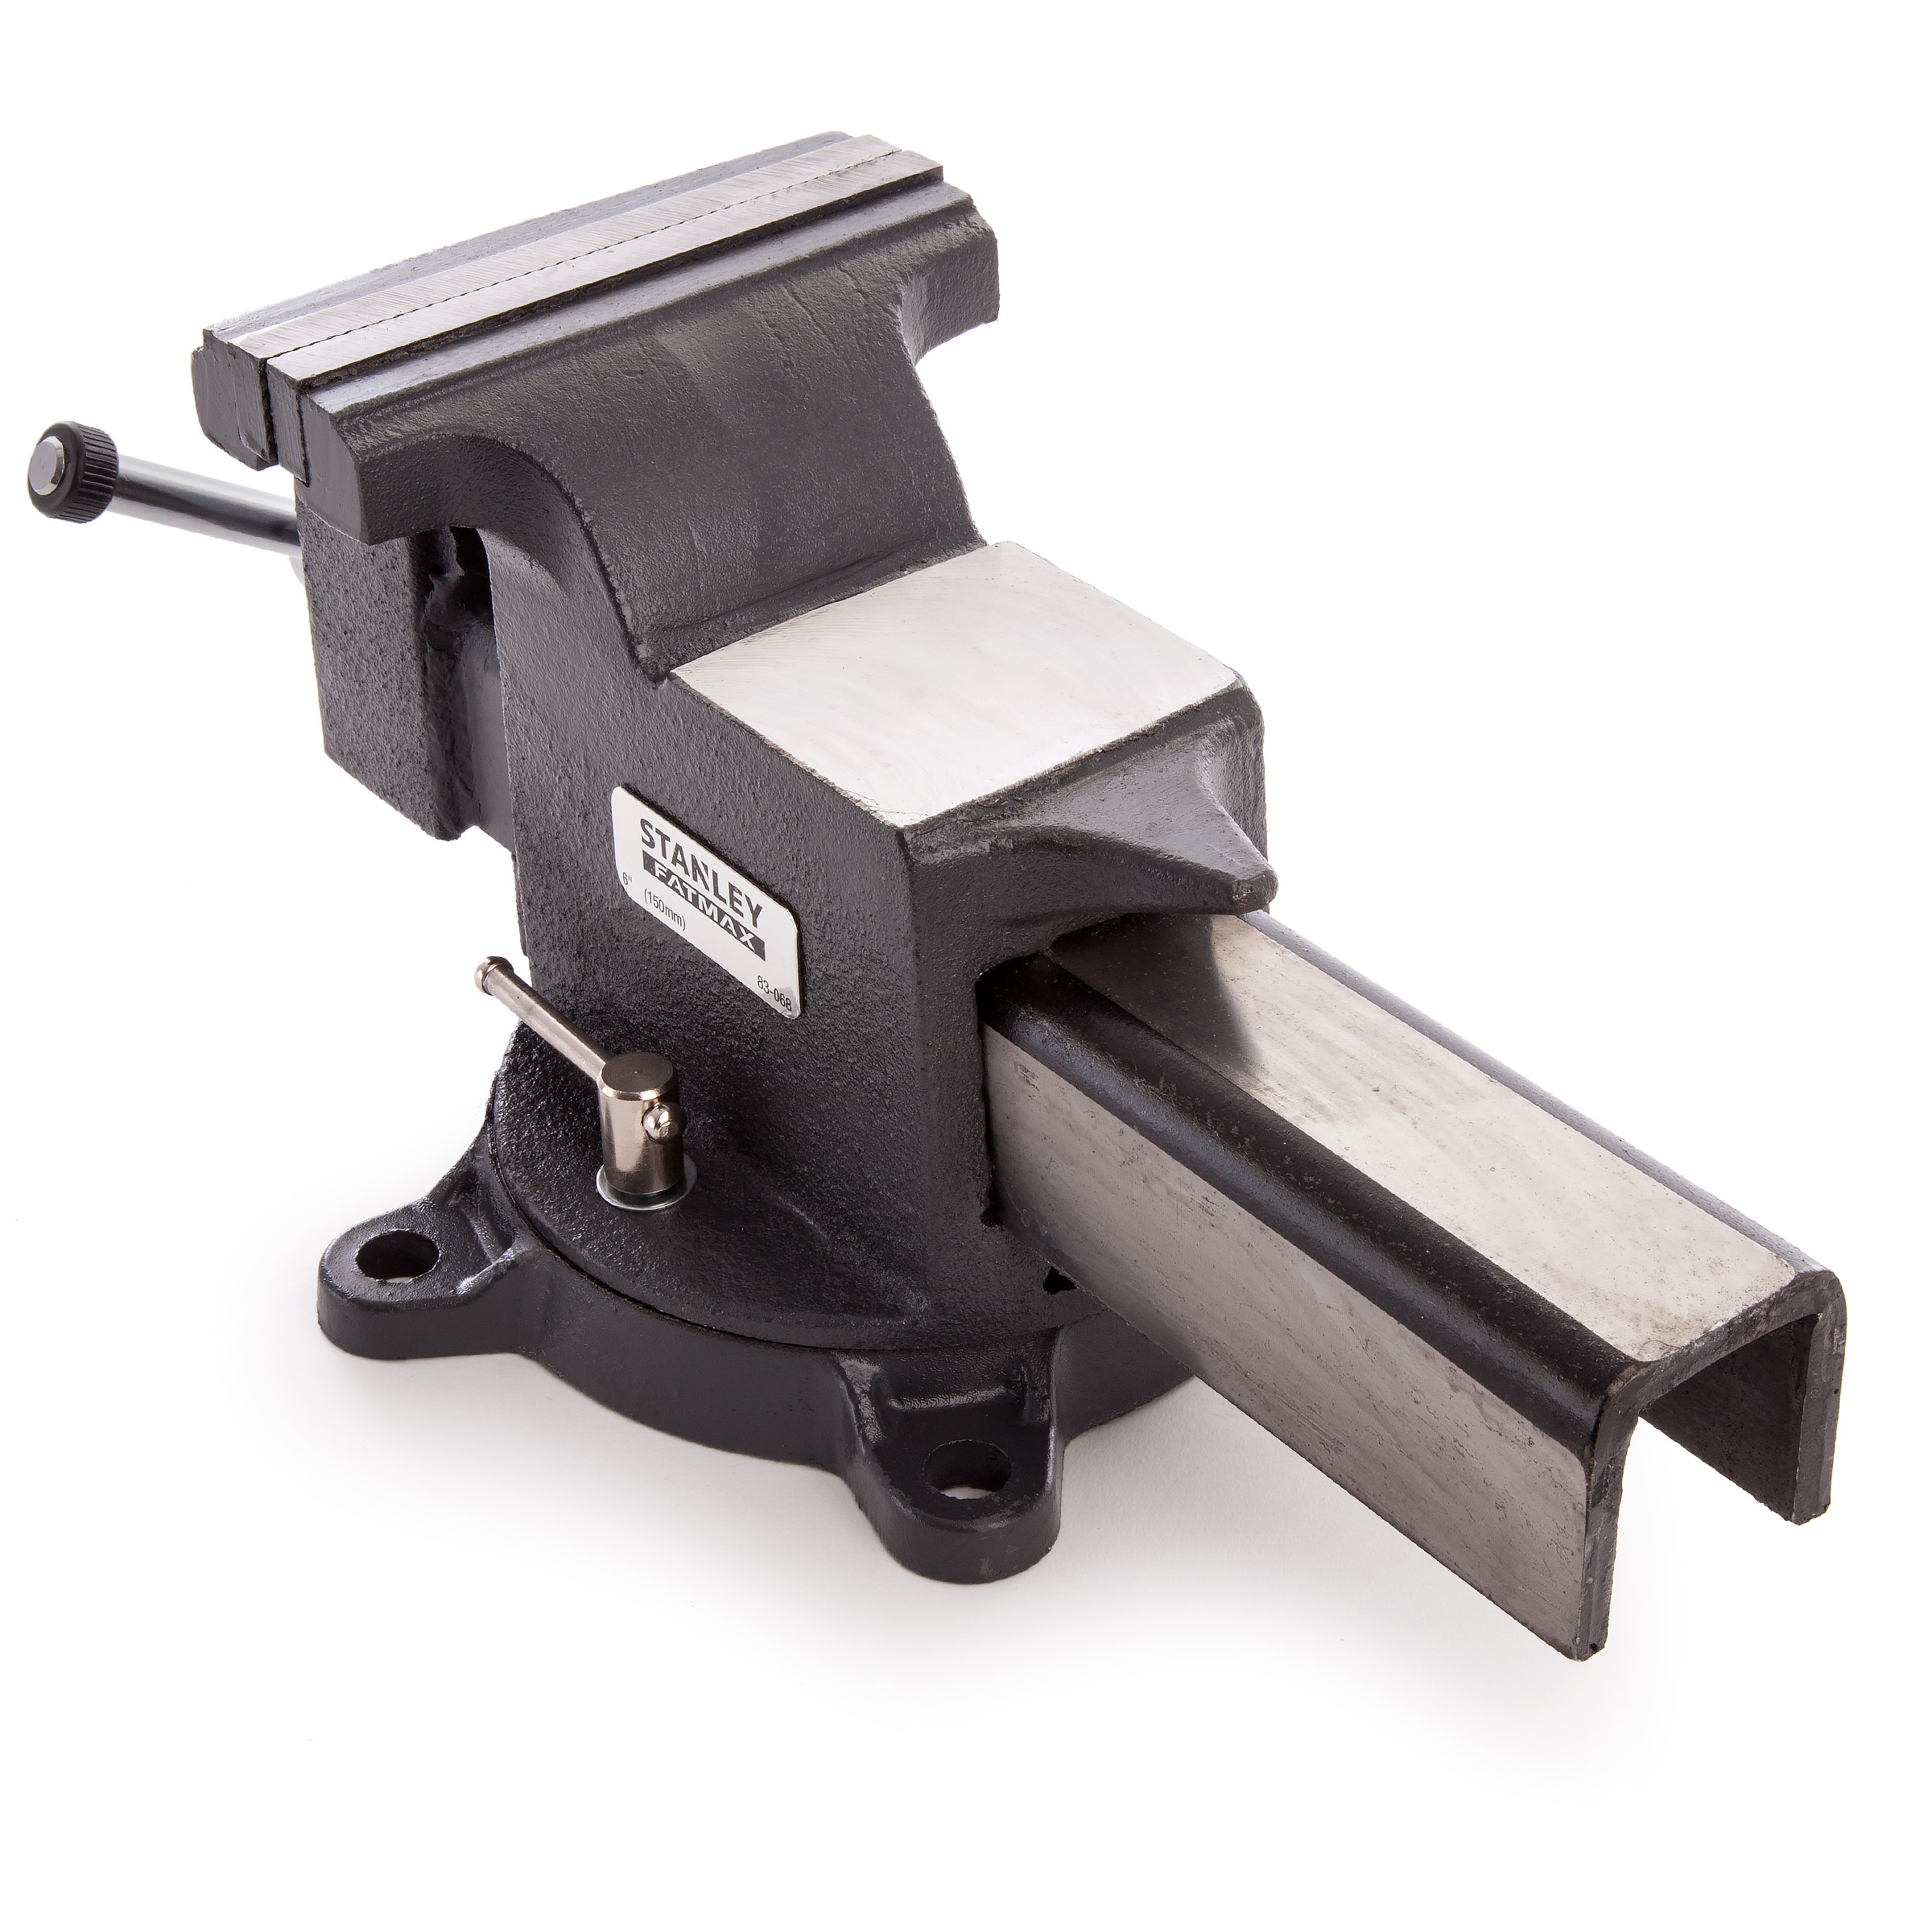 Bench Vice 6 Inch